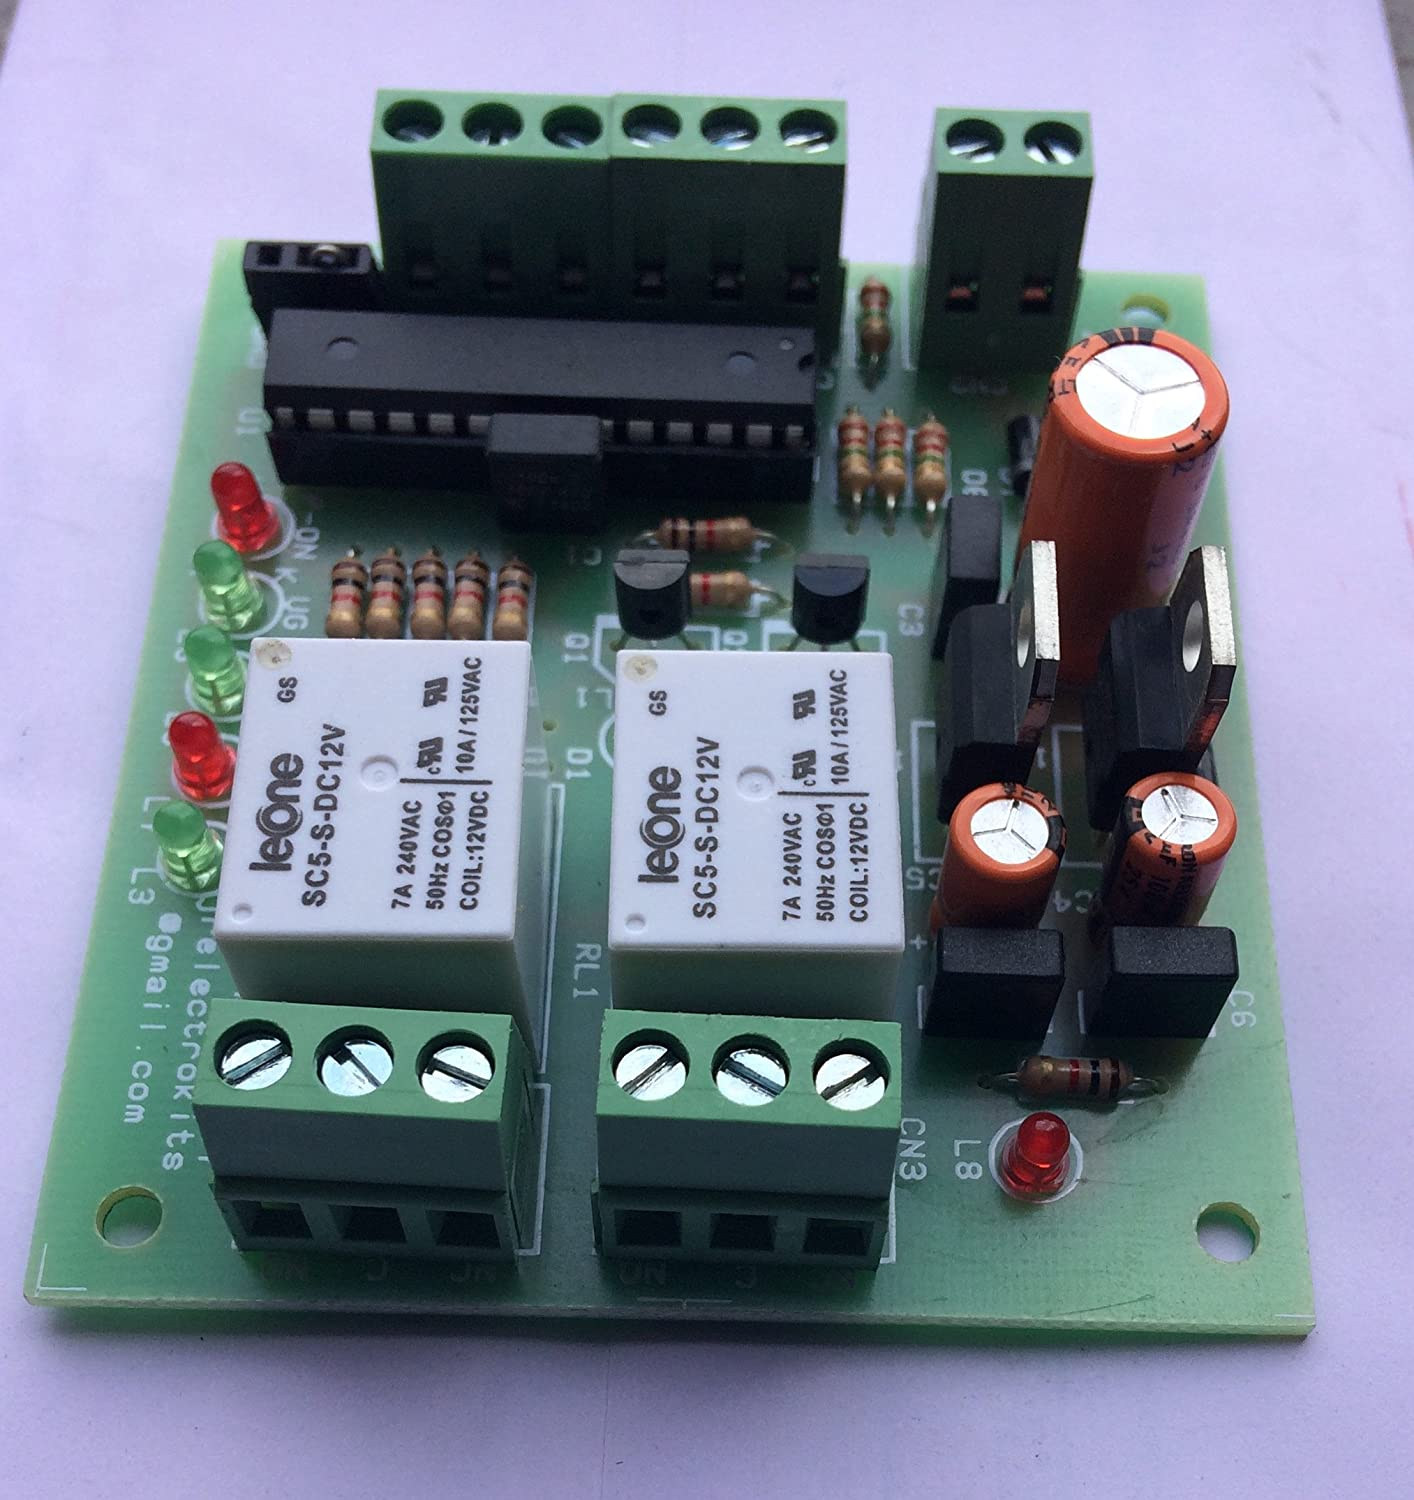 Buy Jr Electrokits Universal Fully Automatic Water Level Controller At Pc Power Supply 1 Electronic Circuit By Levone Works On 12vac Dc Online Low Prices In India